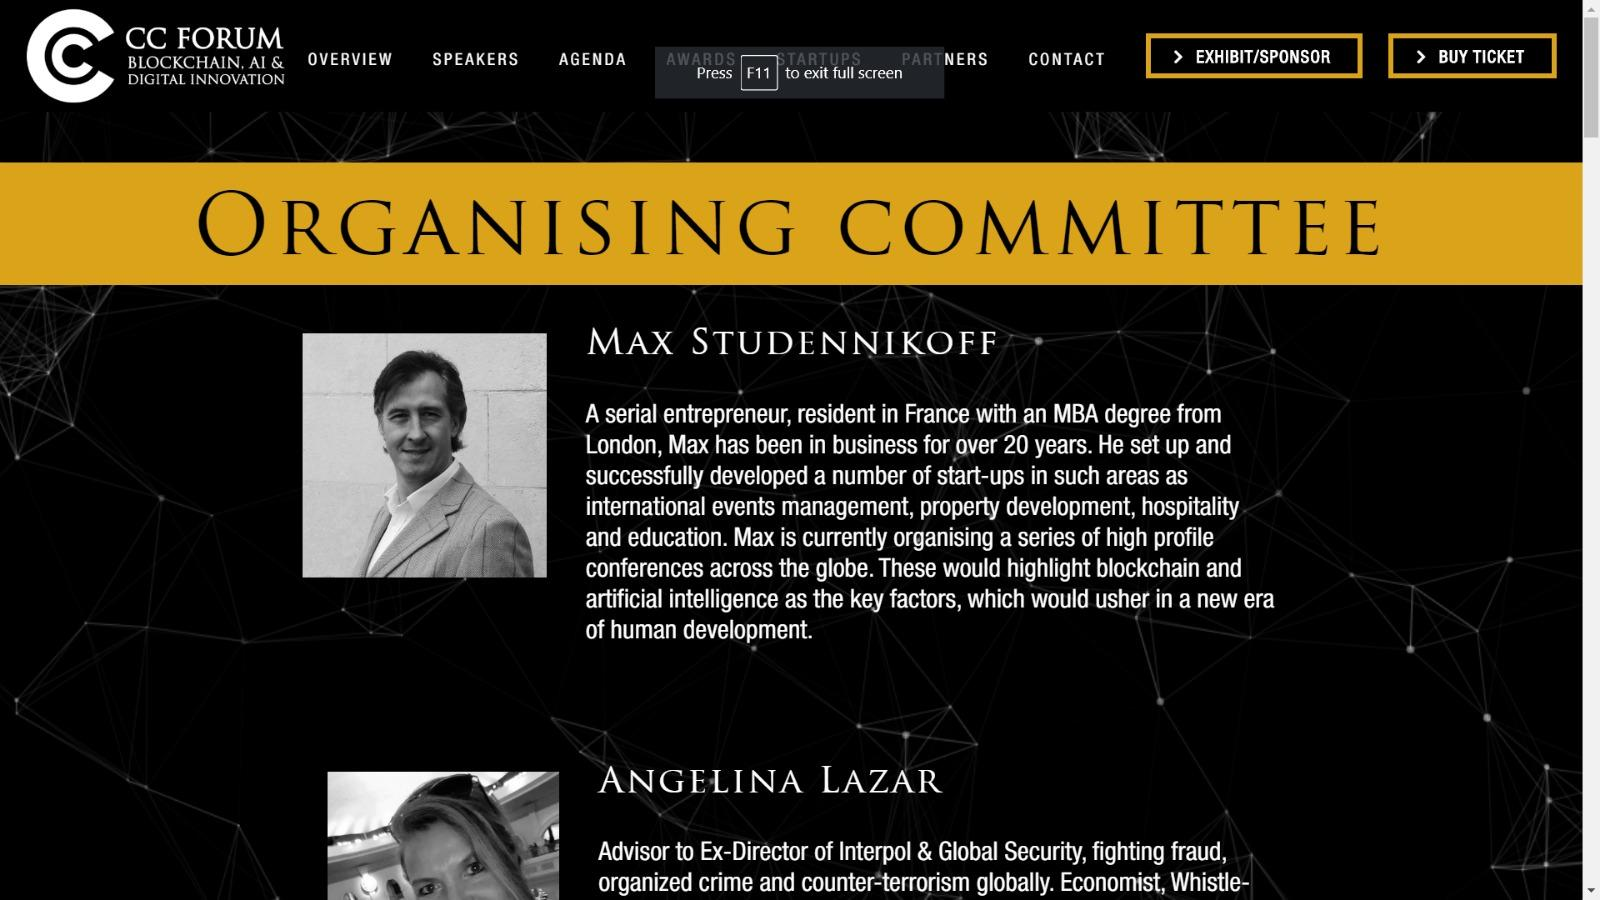 Max Studennikoff on CC Forum website